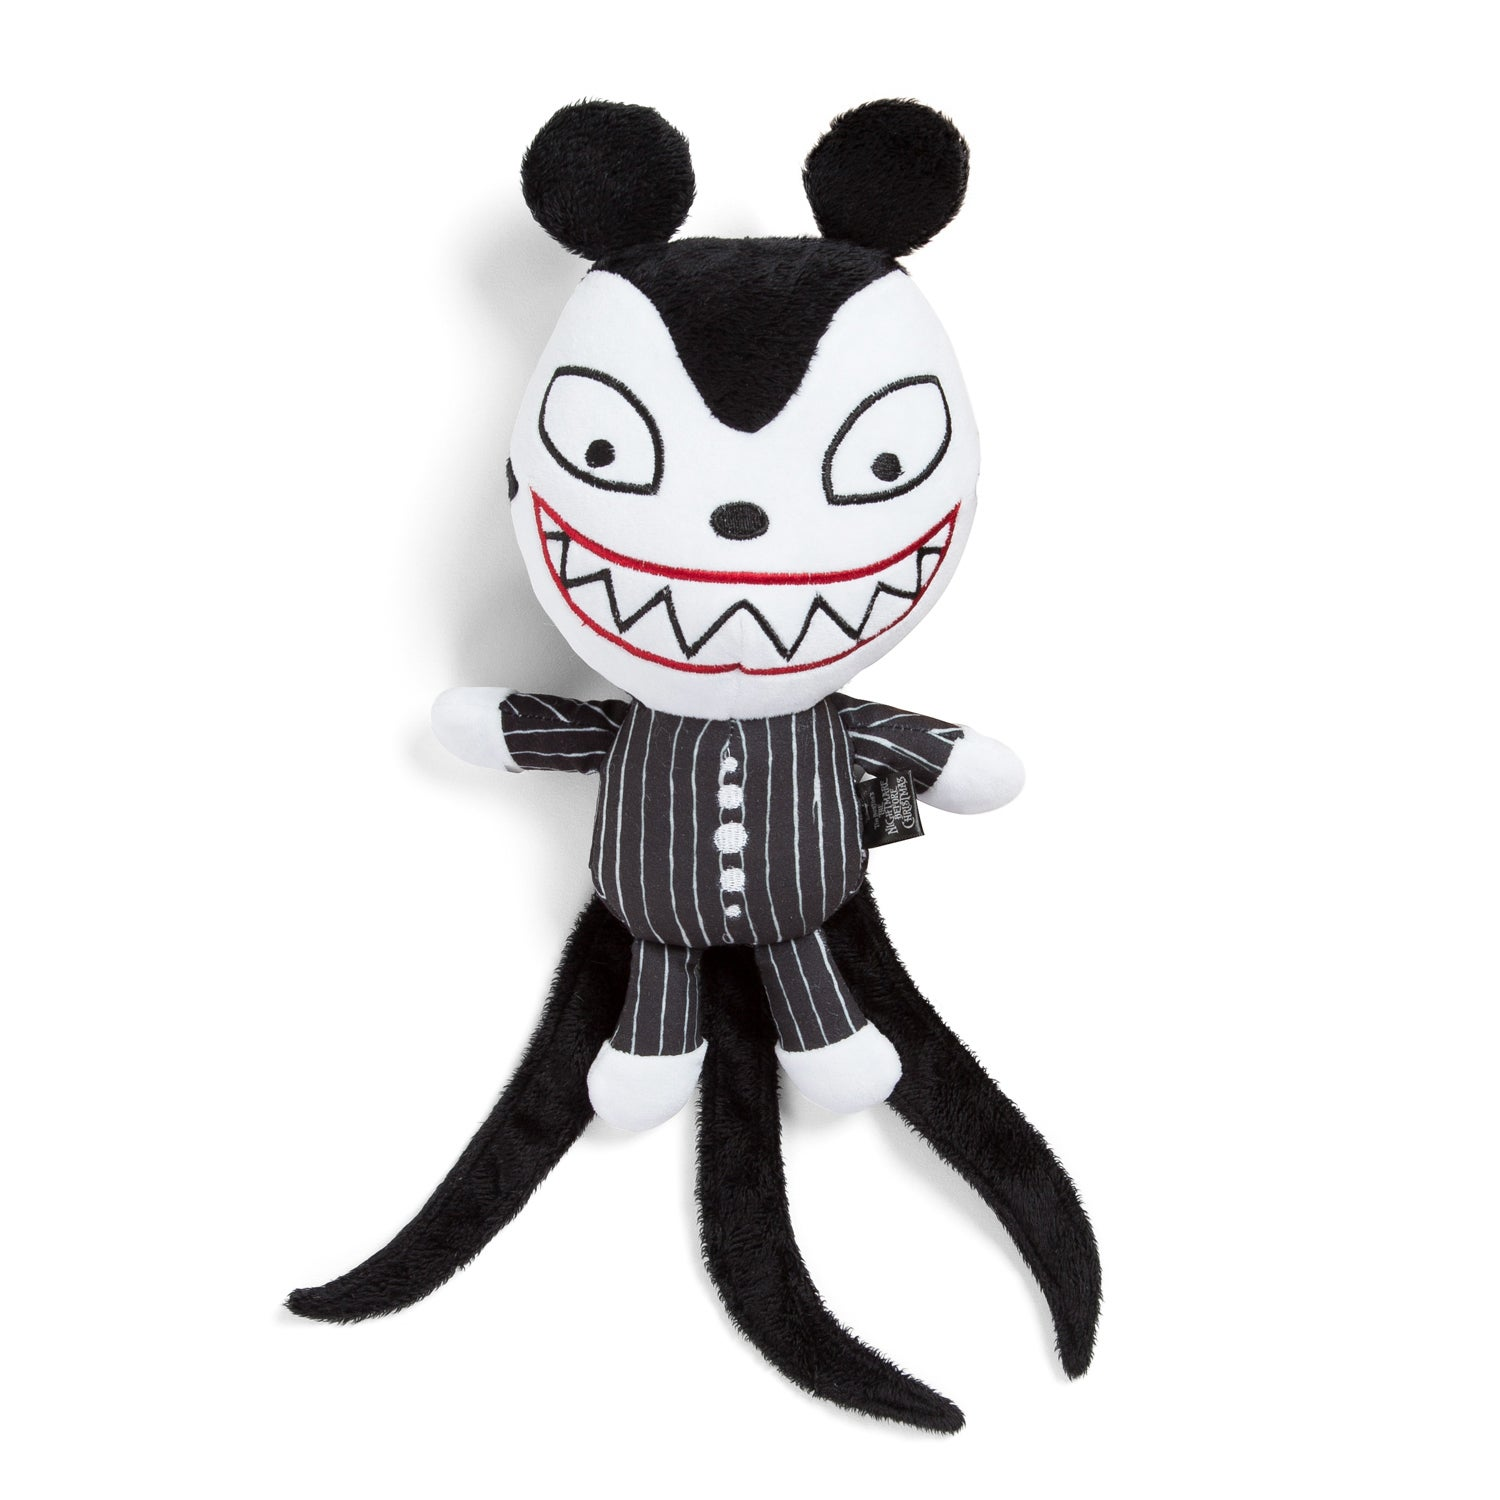 Shop Disney Nightmare Before Christmas Scary Teddy Plush Dog Toy ...